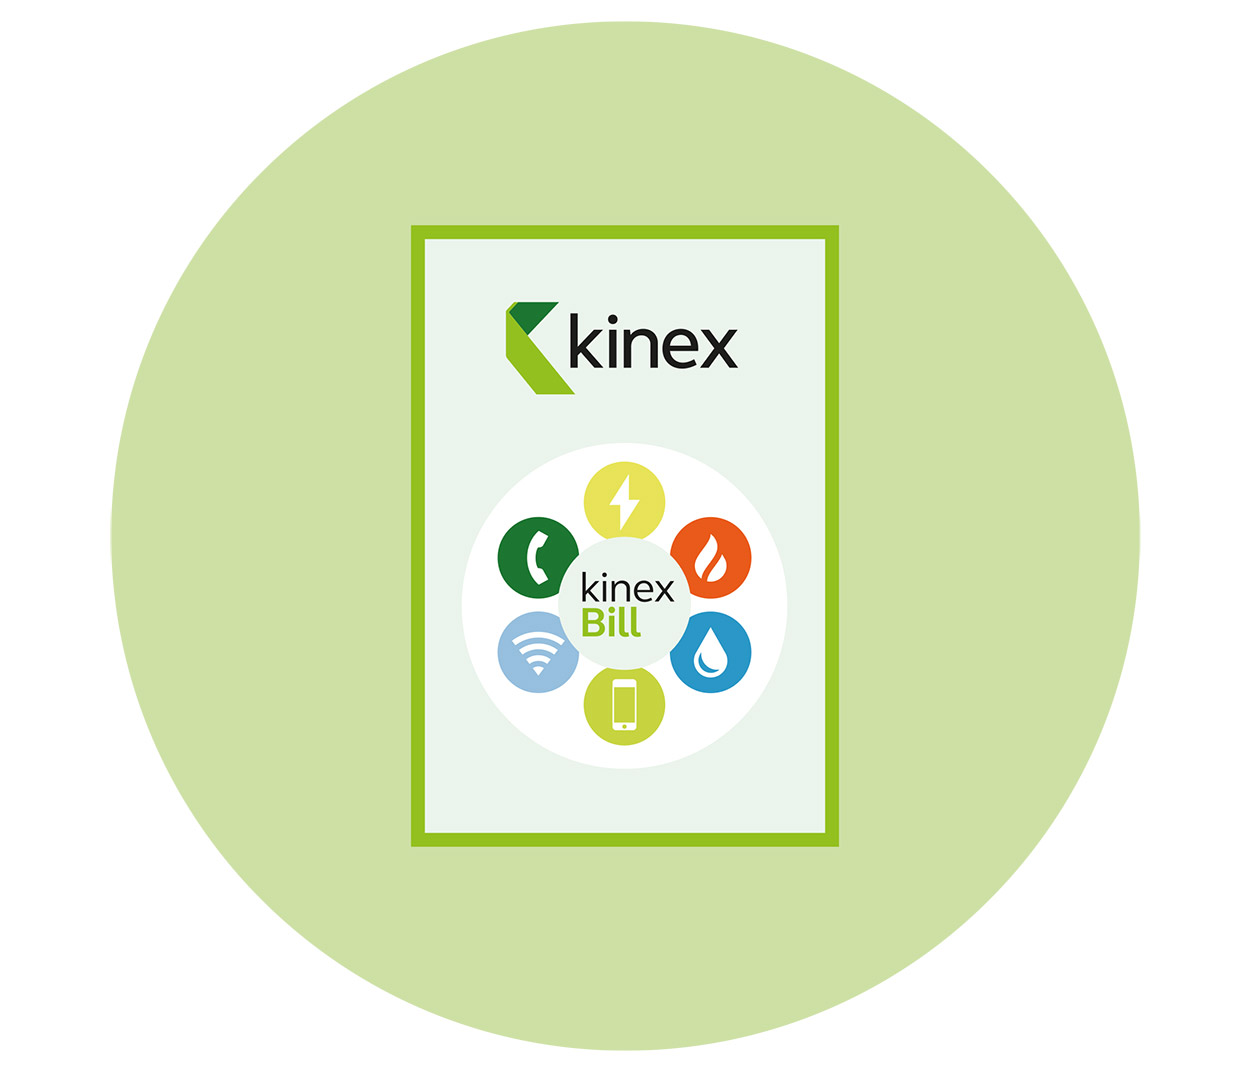 kinex one bill one solution